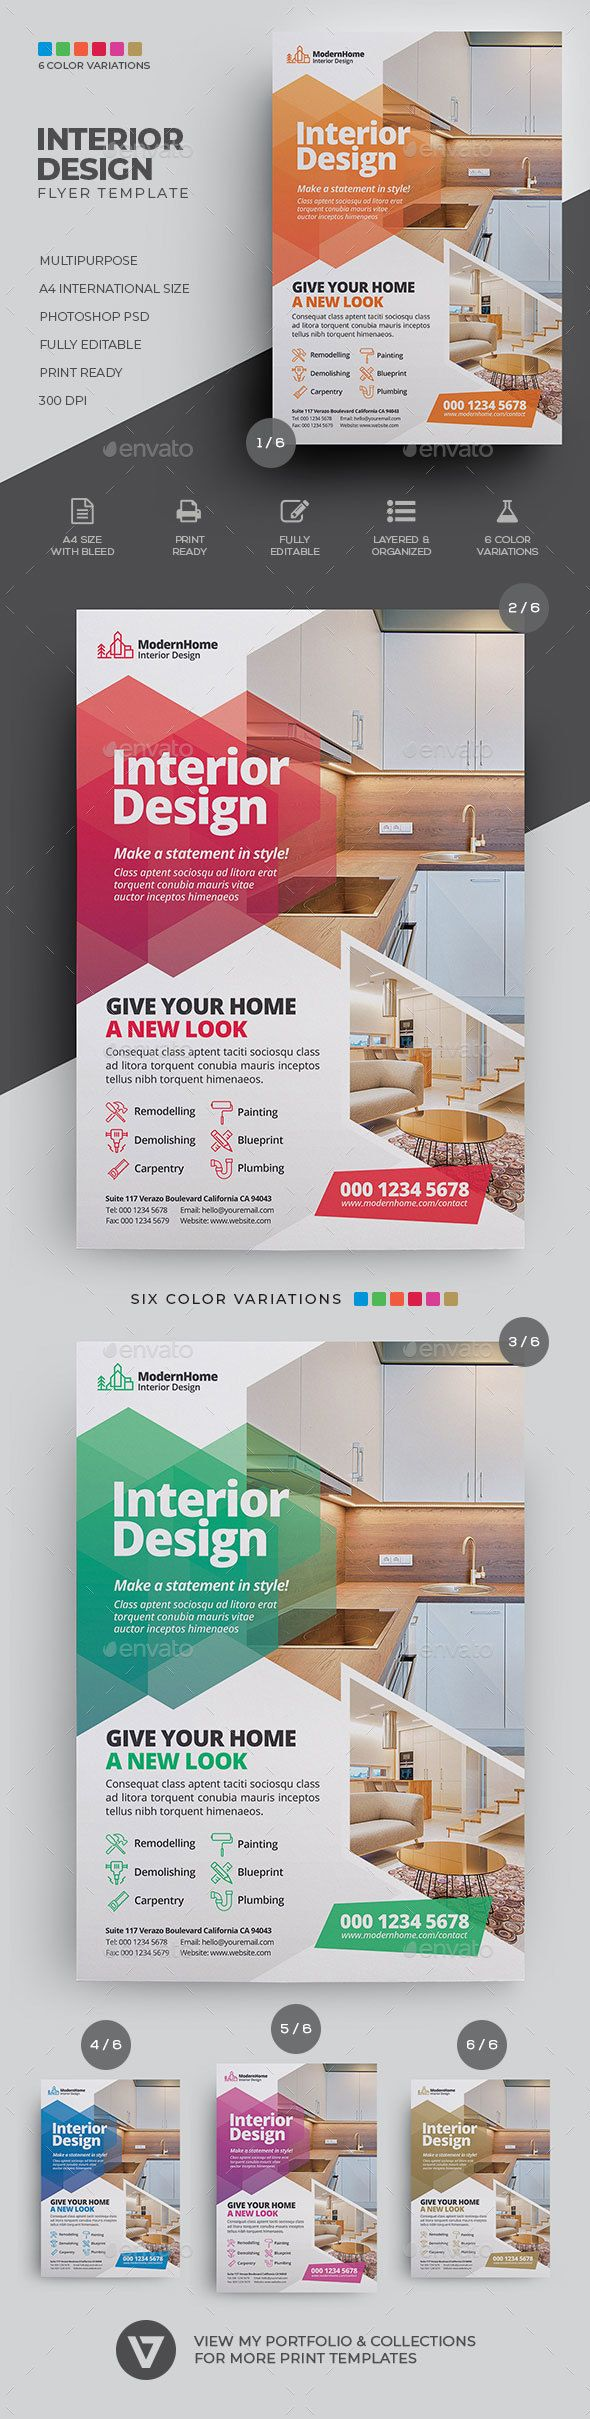 Interior Design Flyer Flyer Design Interior Design Resume